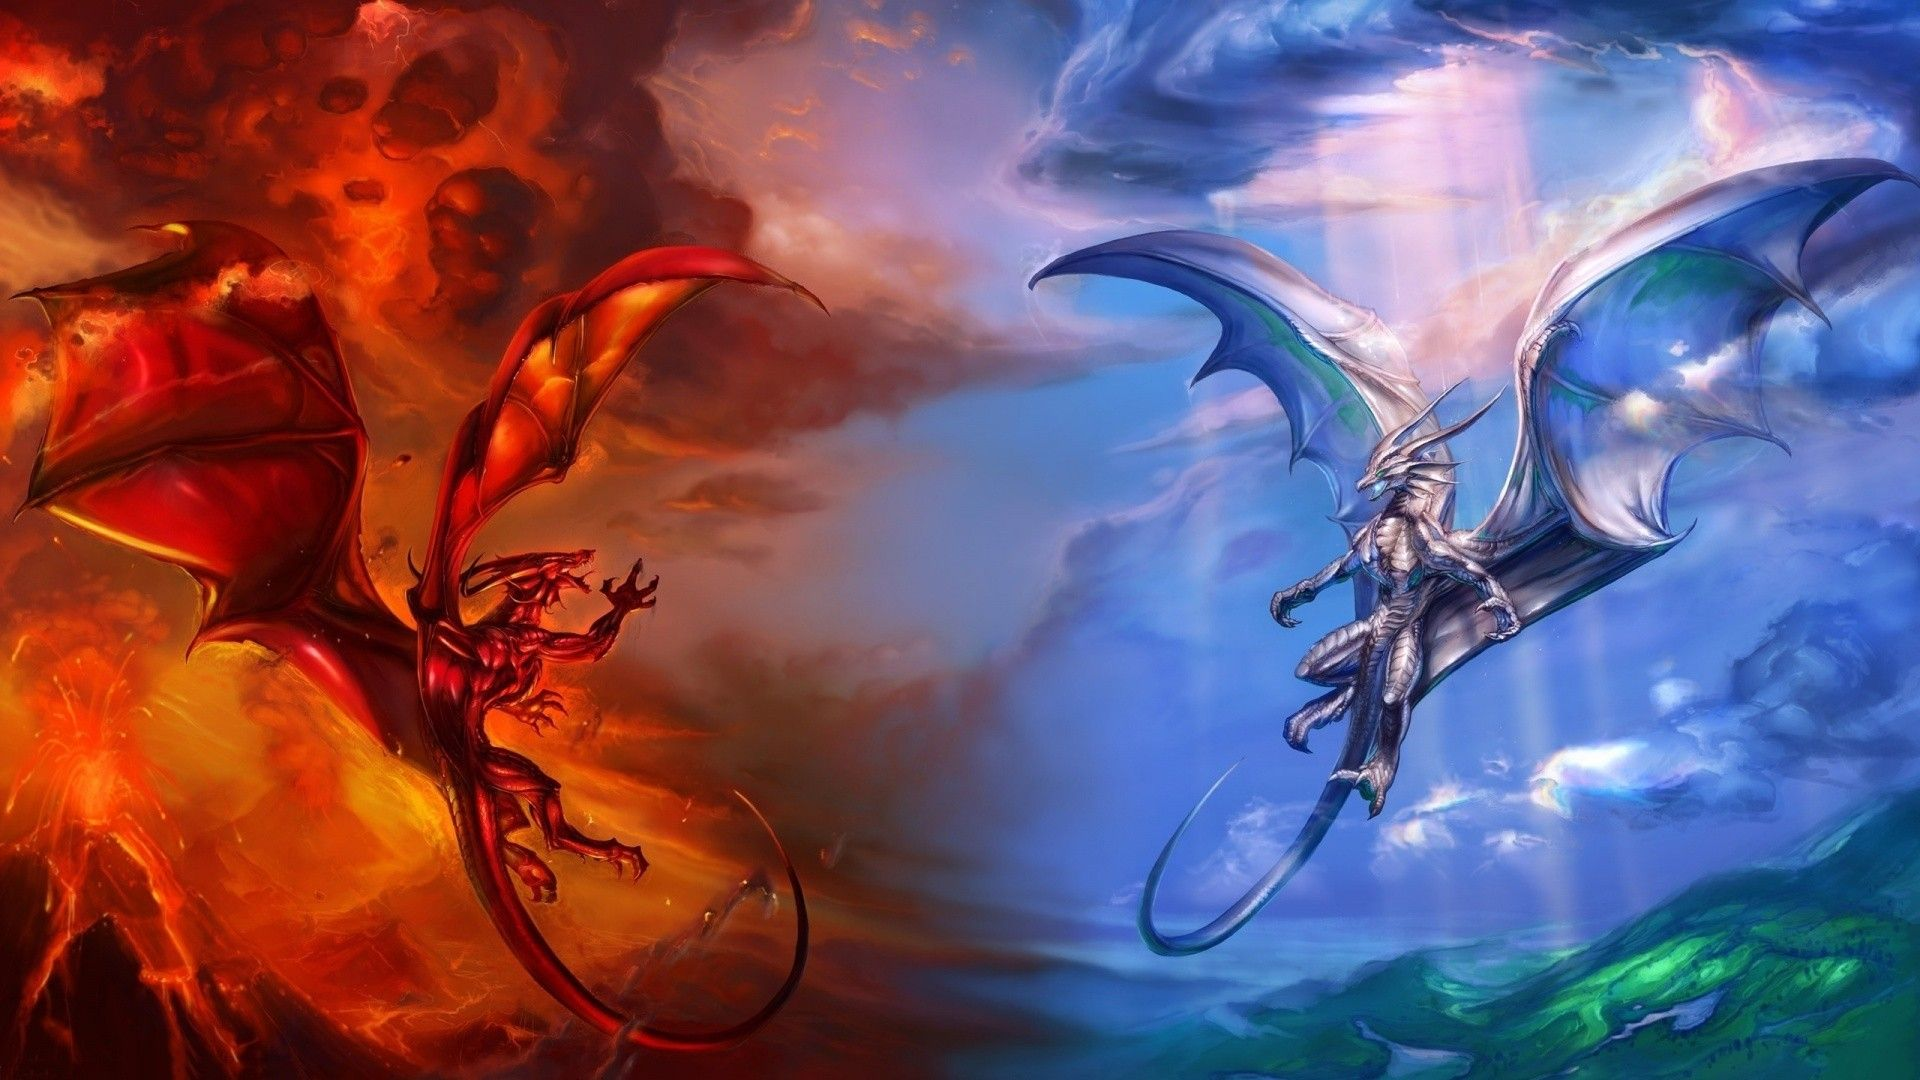 1920x1080 1920x1080 Hd Fire Dragon Vs Ice Dragon Wallpaper Hd